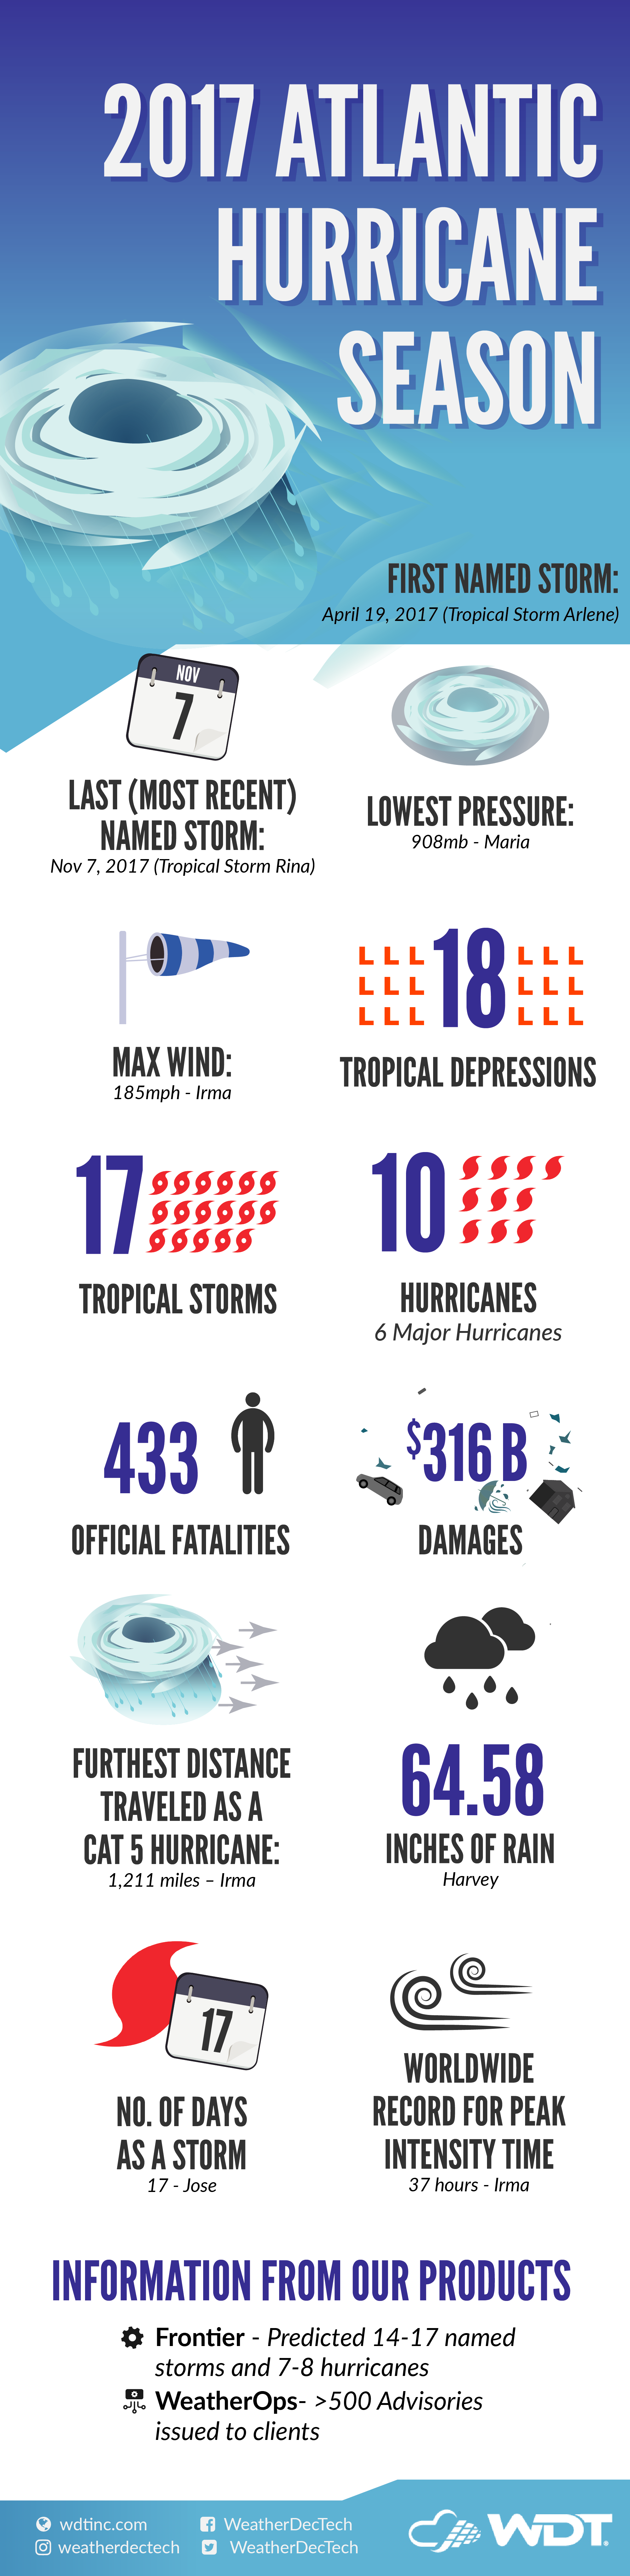 2017-hurricane-season_infographic.png